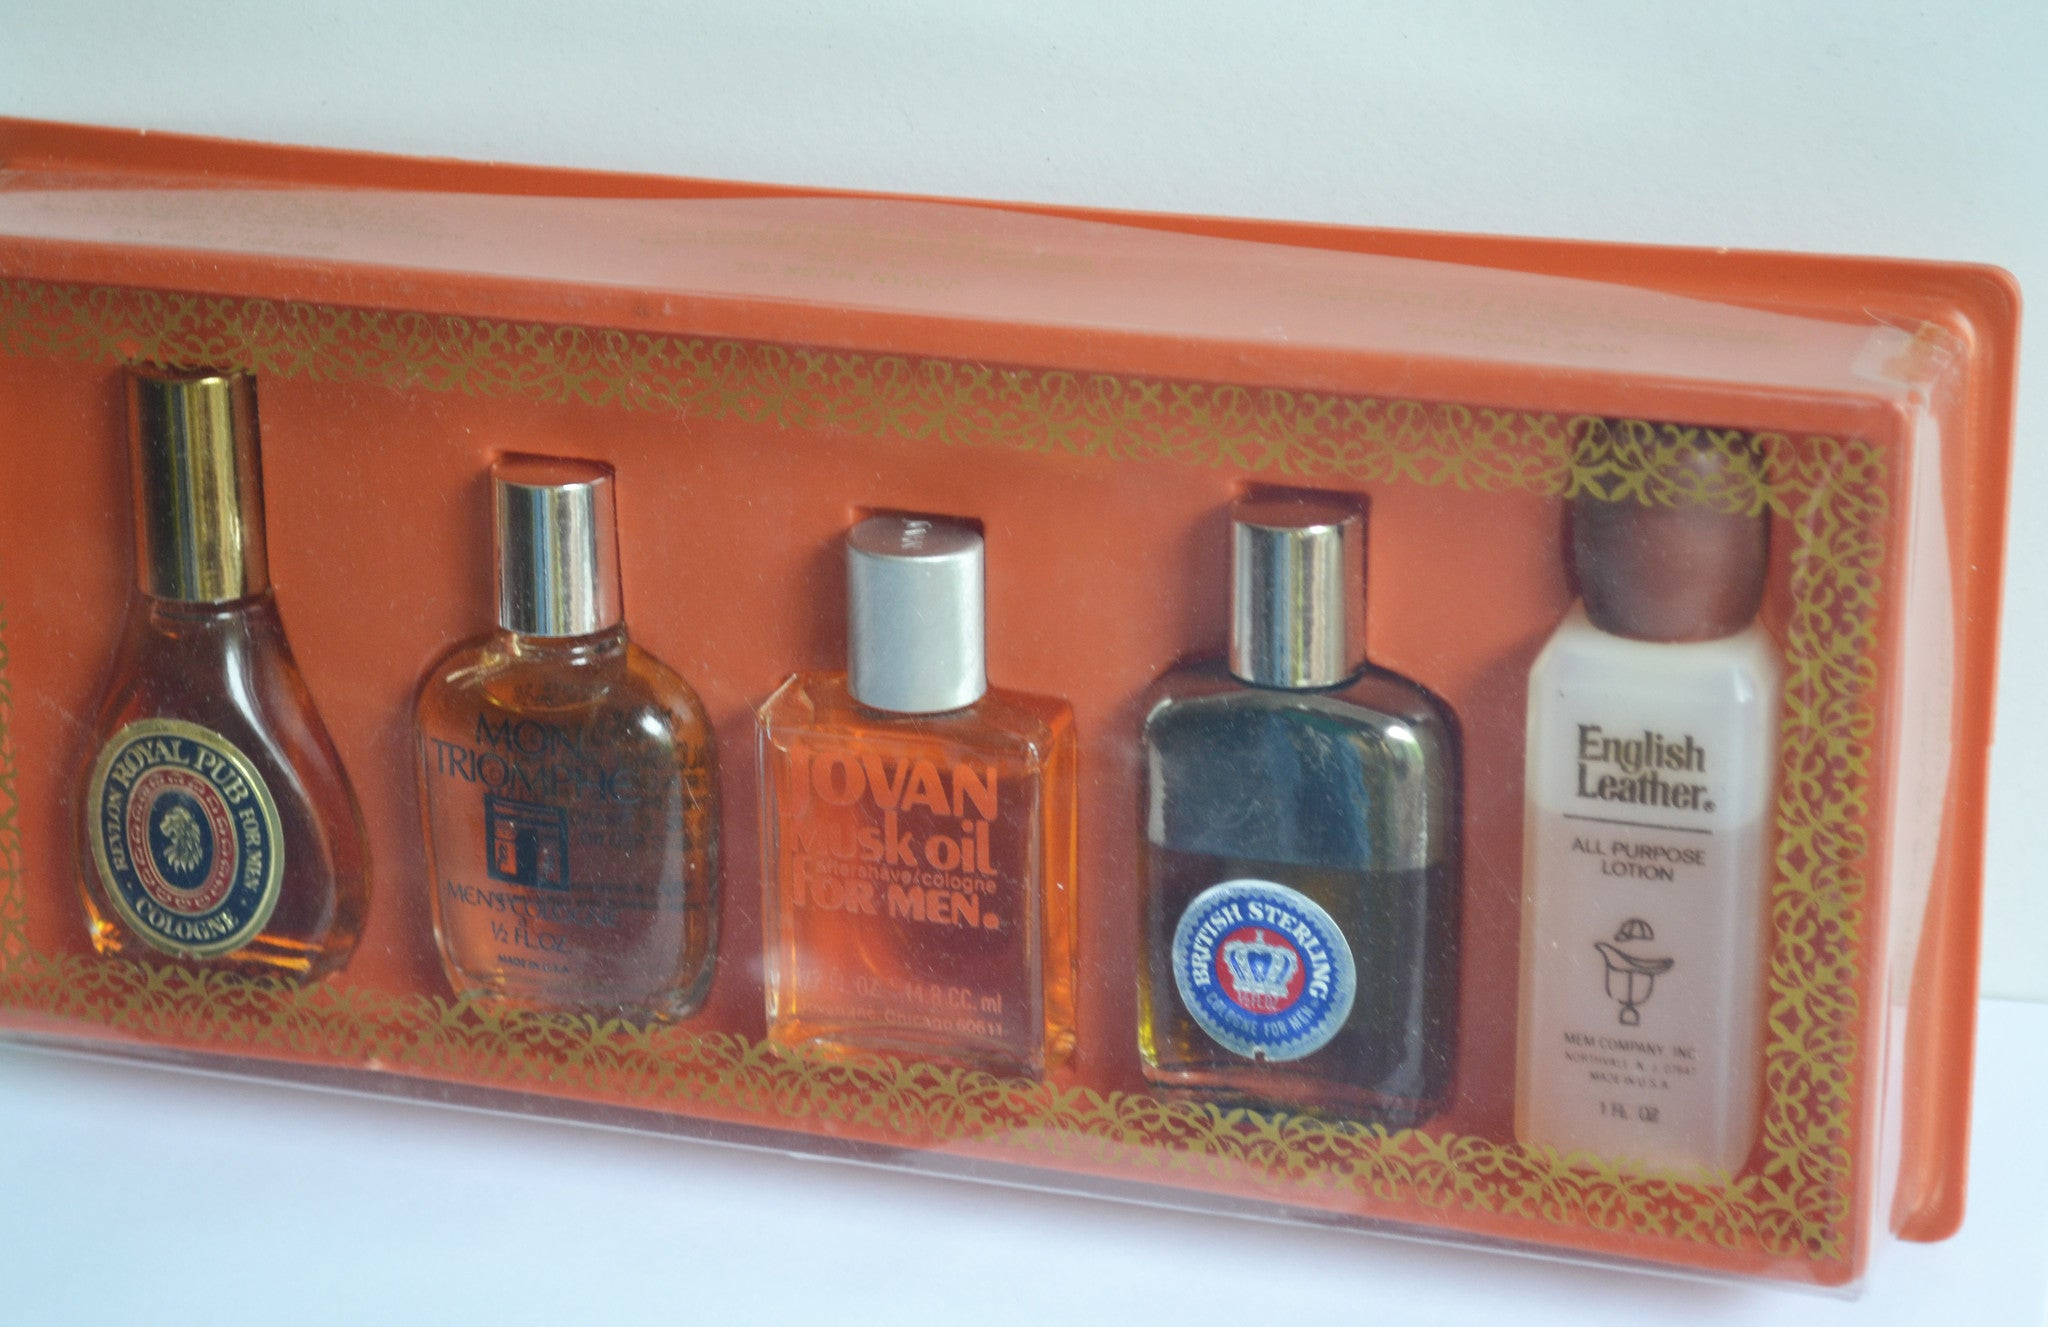 Mens Cologne Set - Revlon Royal Pub, Mon Triomphe, Jovan Musk, British Sterling, MEM English Leather